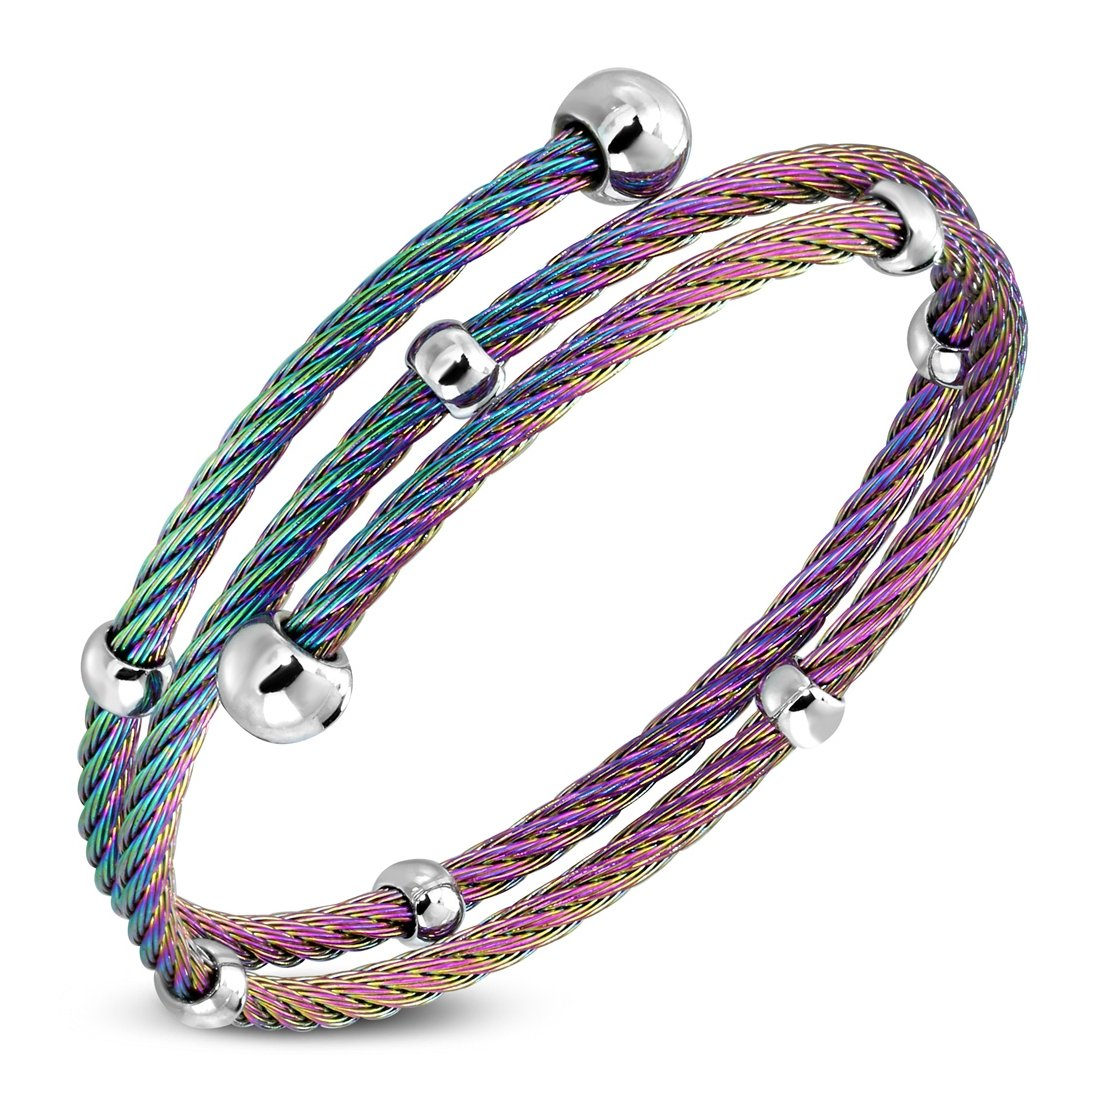 Stainless Steel Anodized Multi Wrap Beads Twisted Cable Wire Cuff Bangle Length 7.6